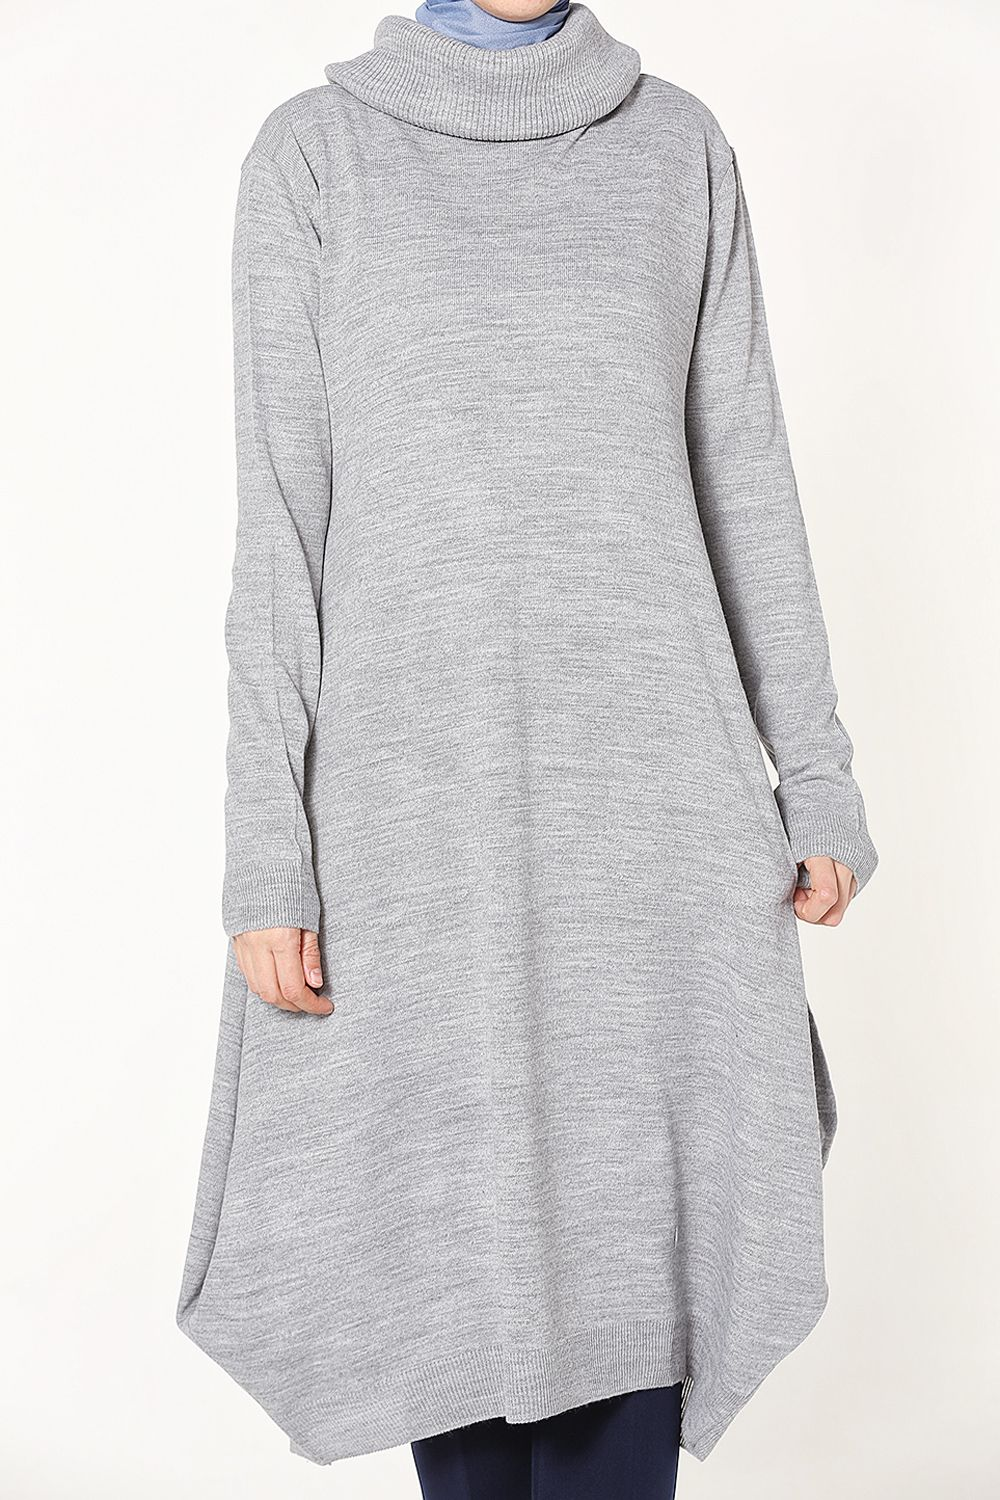 KNITWEAR LONG TUNIC